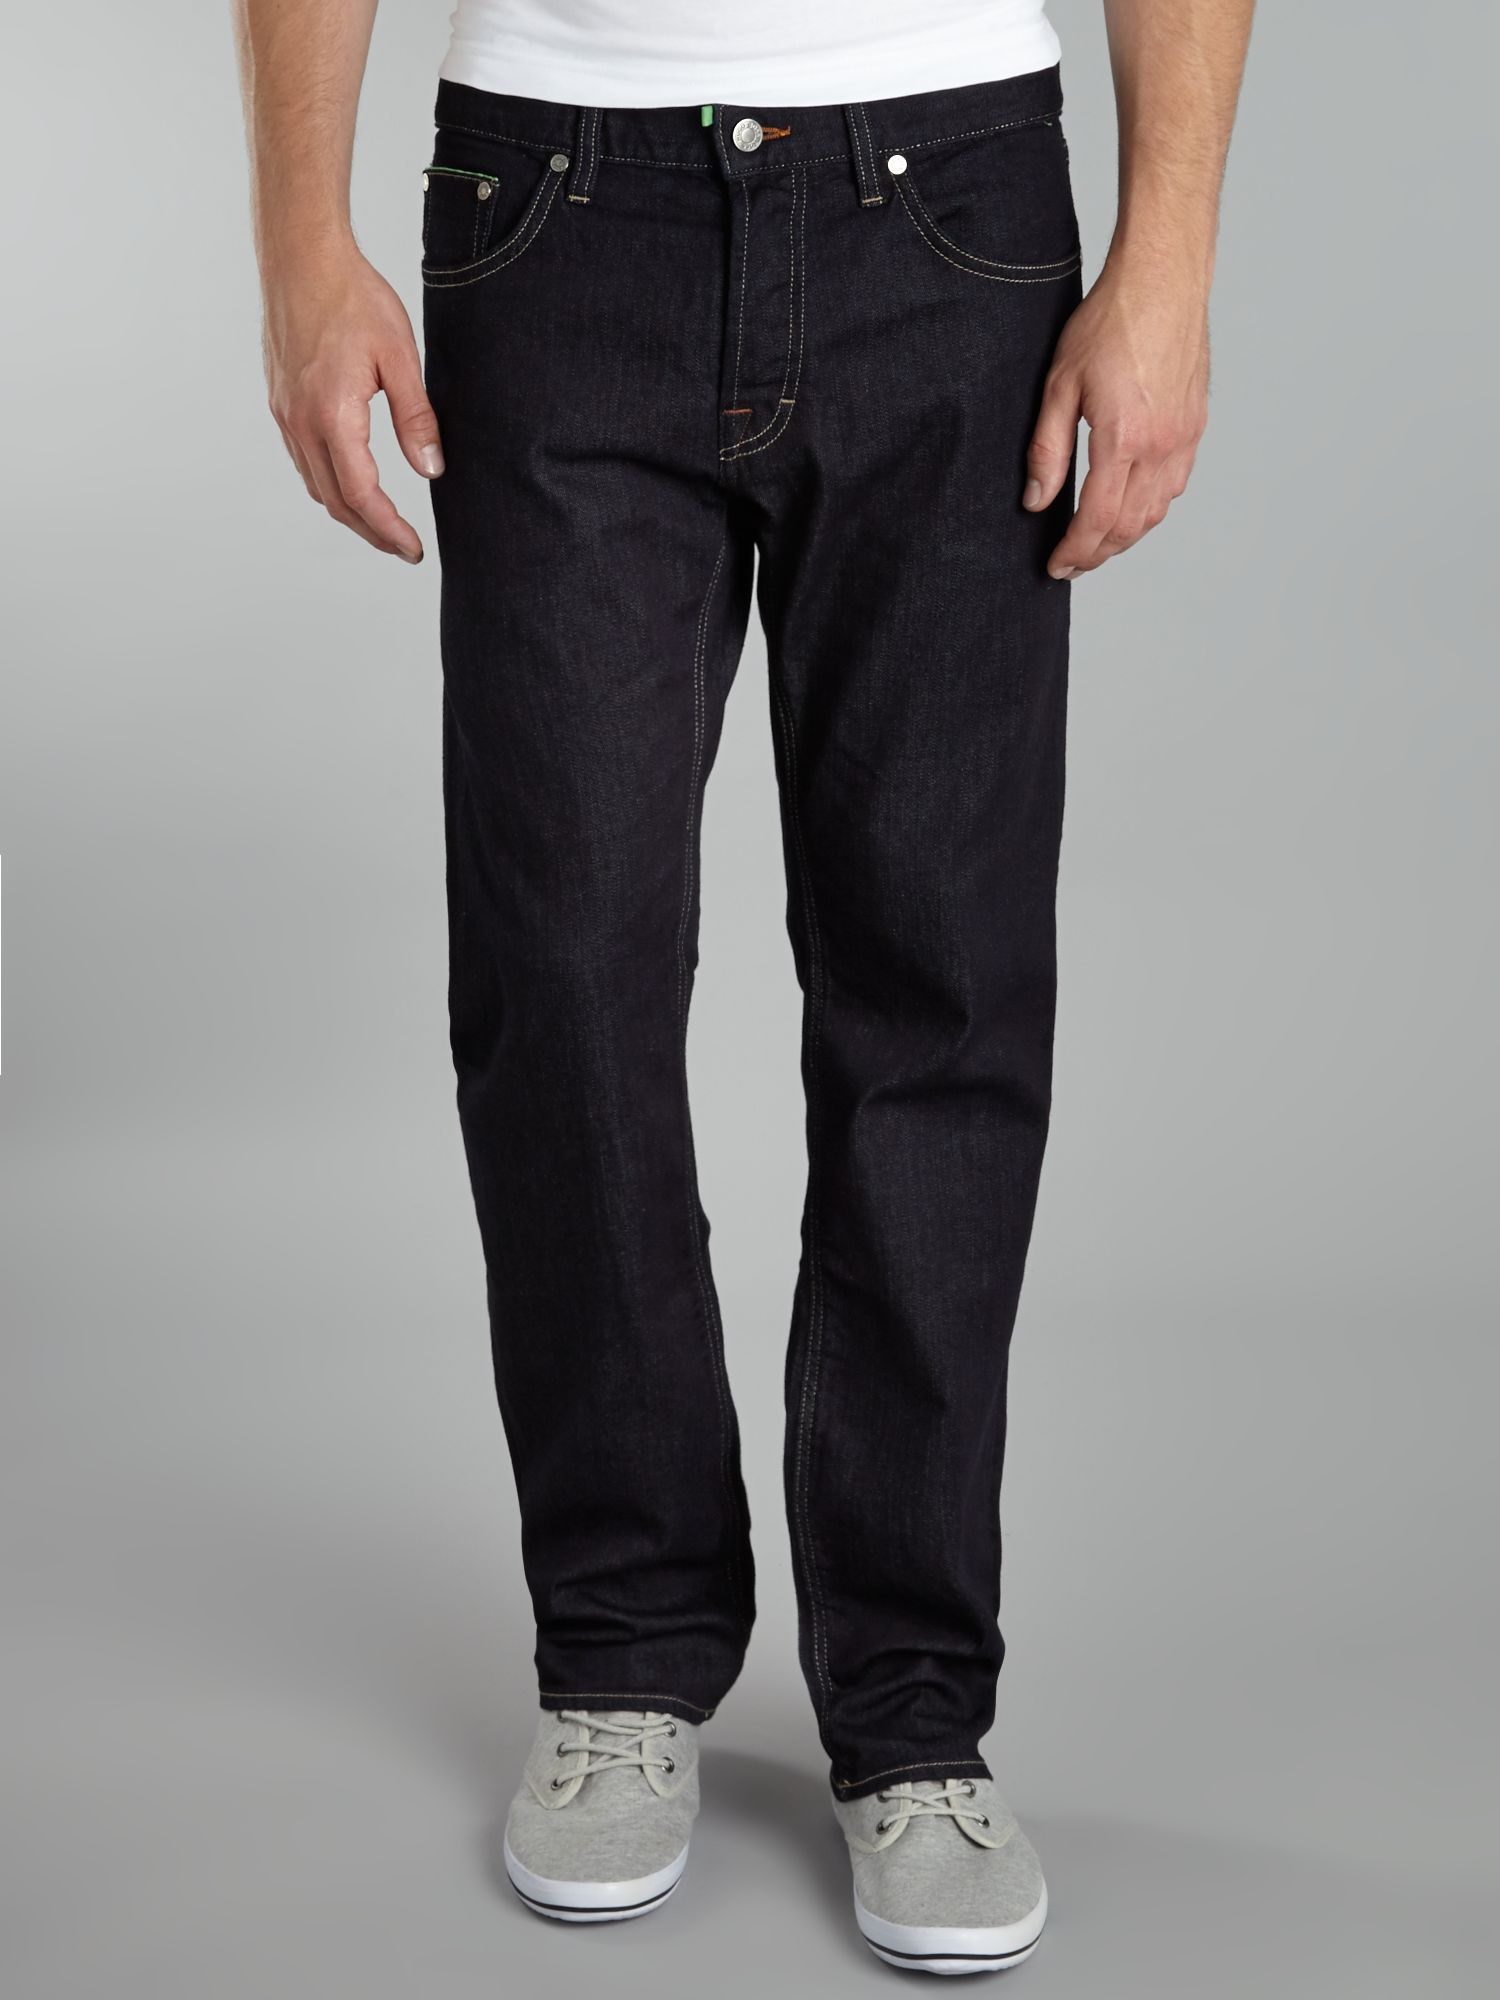 Deam straight fit washed jeans